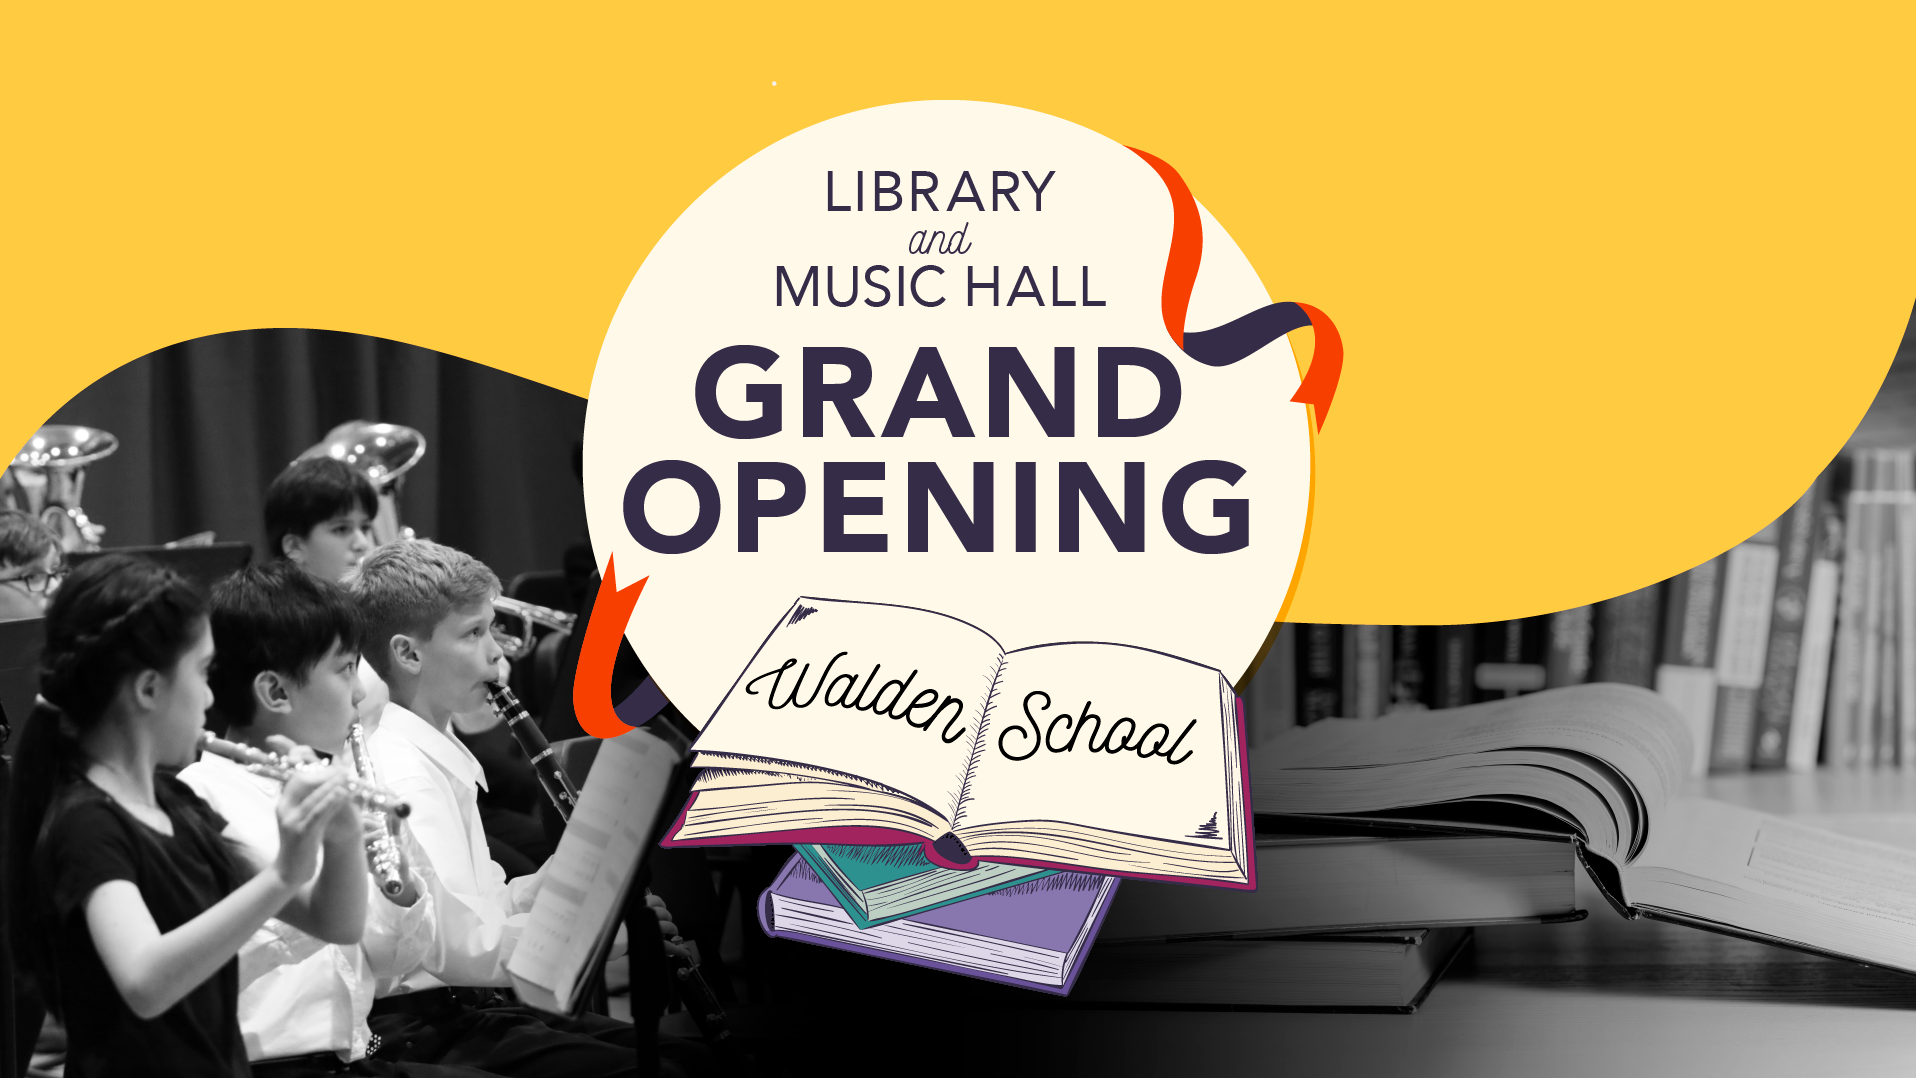 Ribbon Cutting - March 2, 2019! - Open the doors and cut the ribbon! The new library media center and music hall are officially opening on March 2, 2019. Everyone is invited to attend this momentous occasion, celebrating new facilities that expand both the campus and educational opportunities for our students.